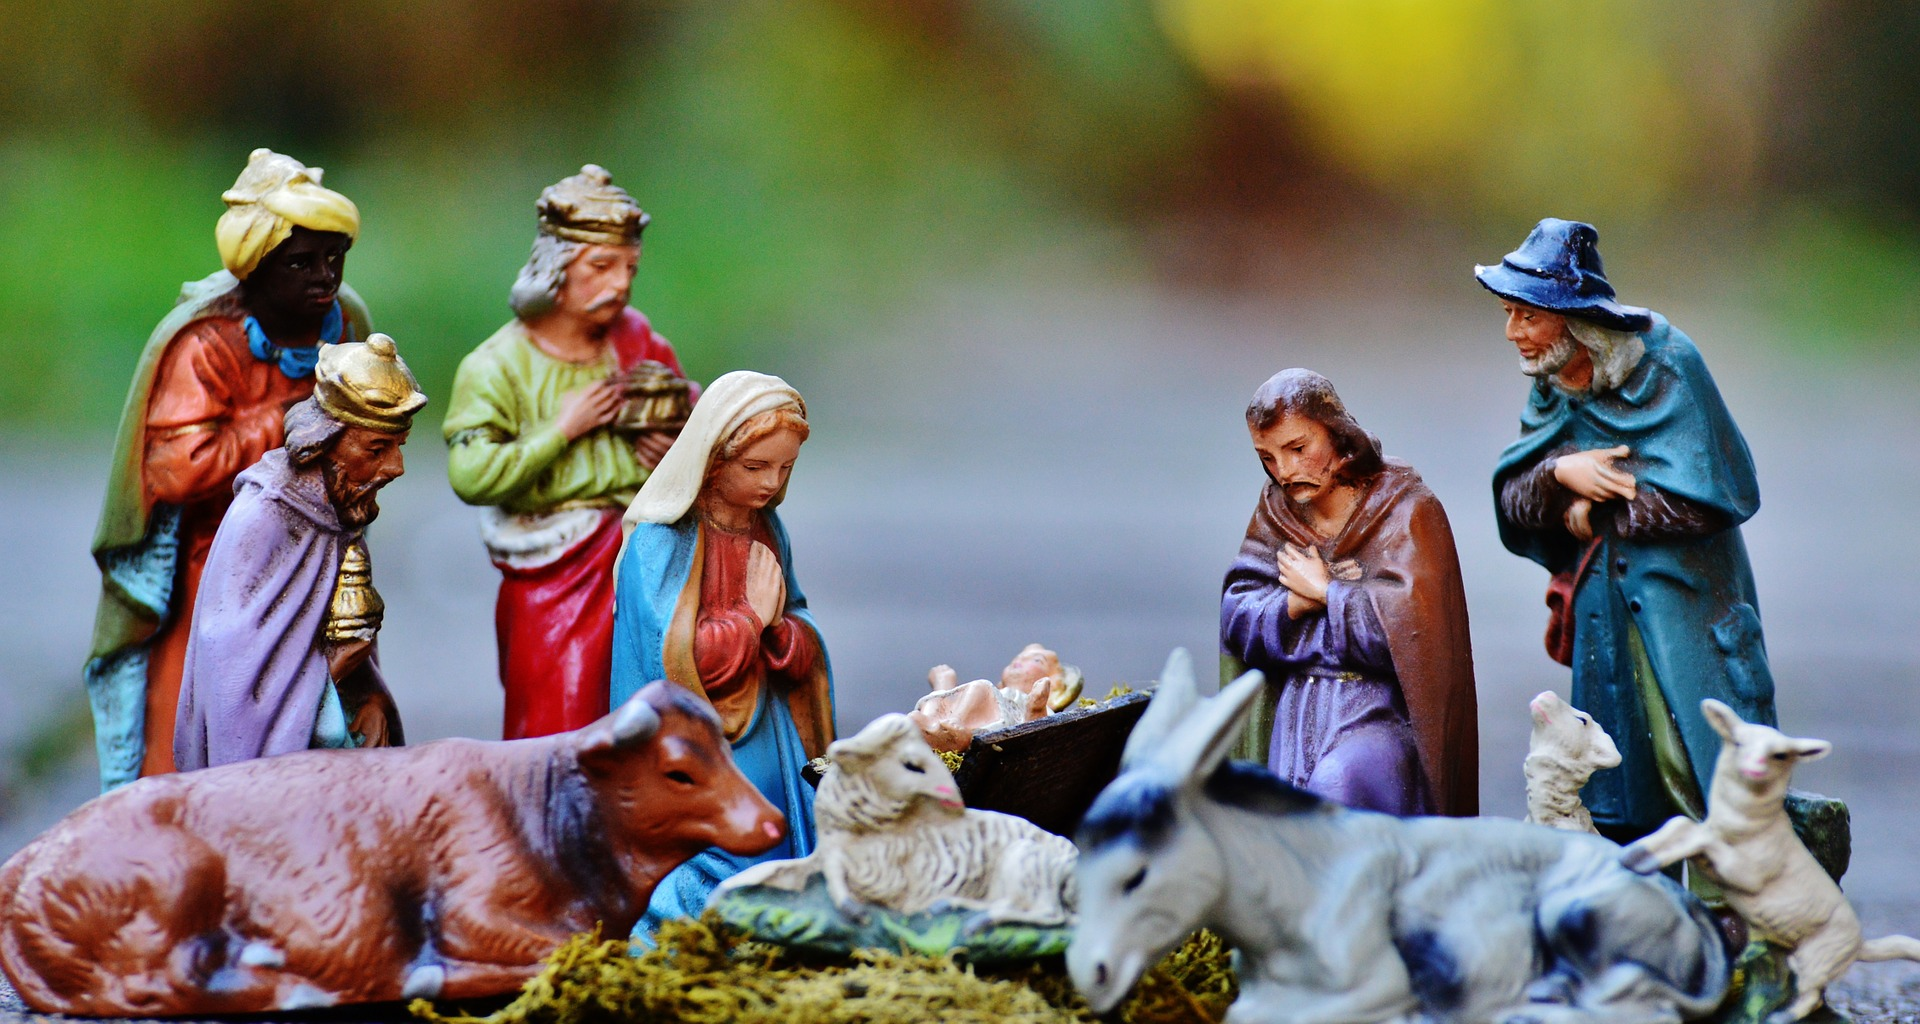 christmas-crib-figures-1060021_1920.jpg